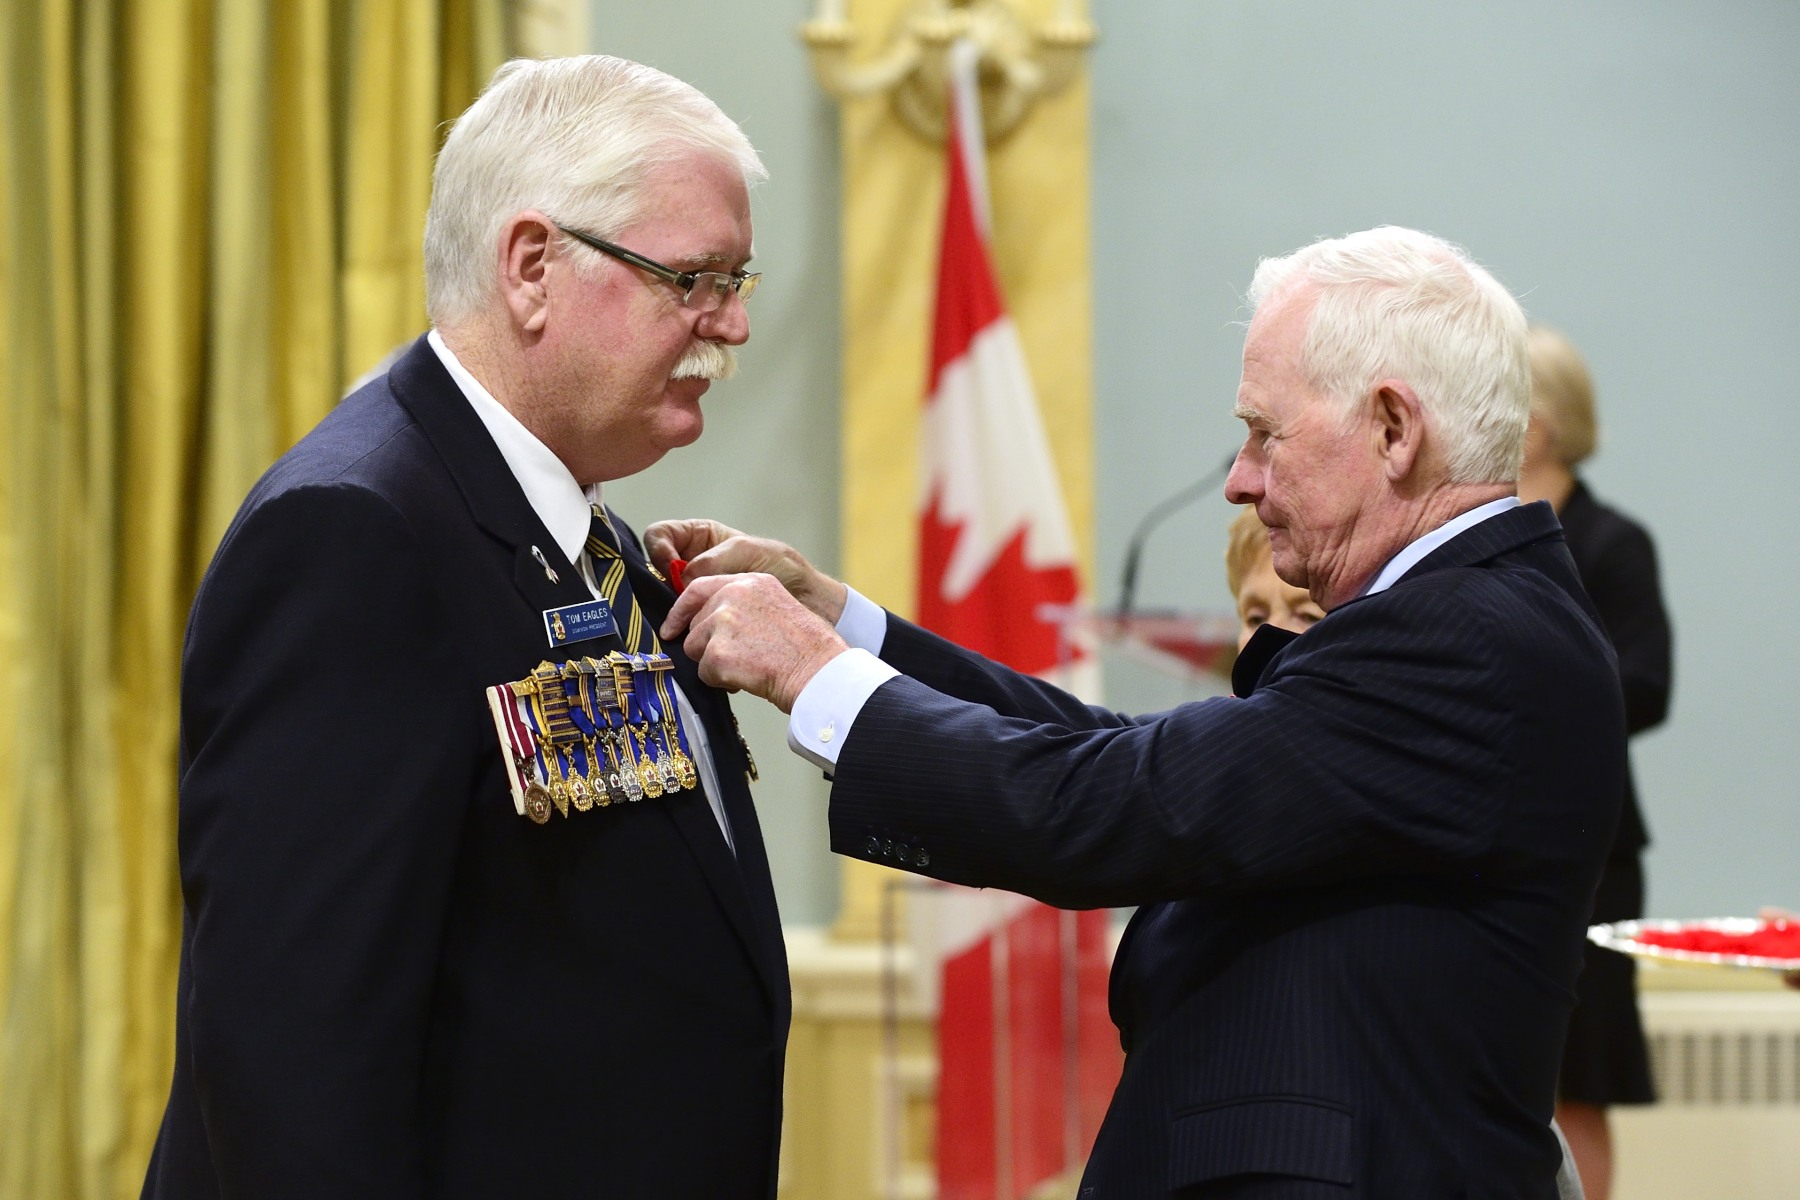 The Governor General then presented a poppy to Mr. Eagles.